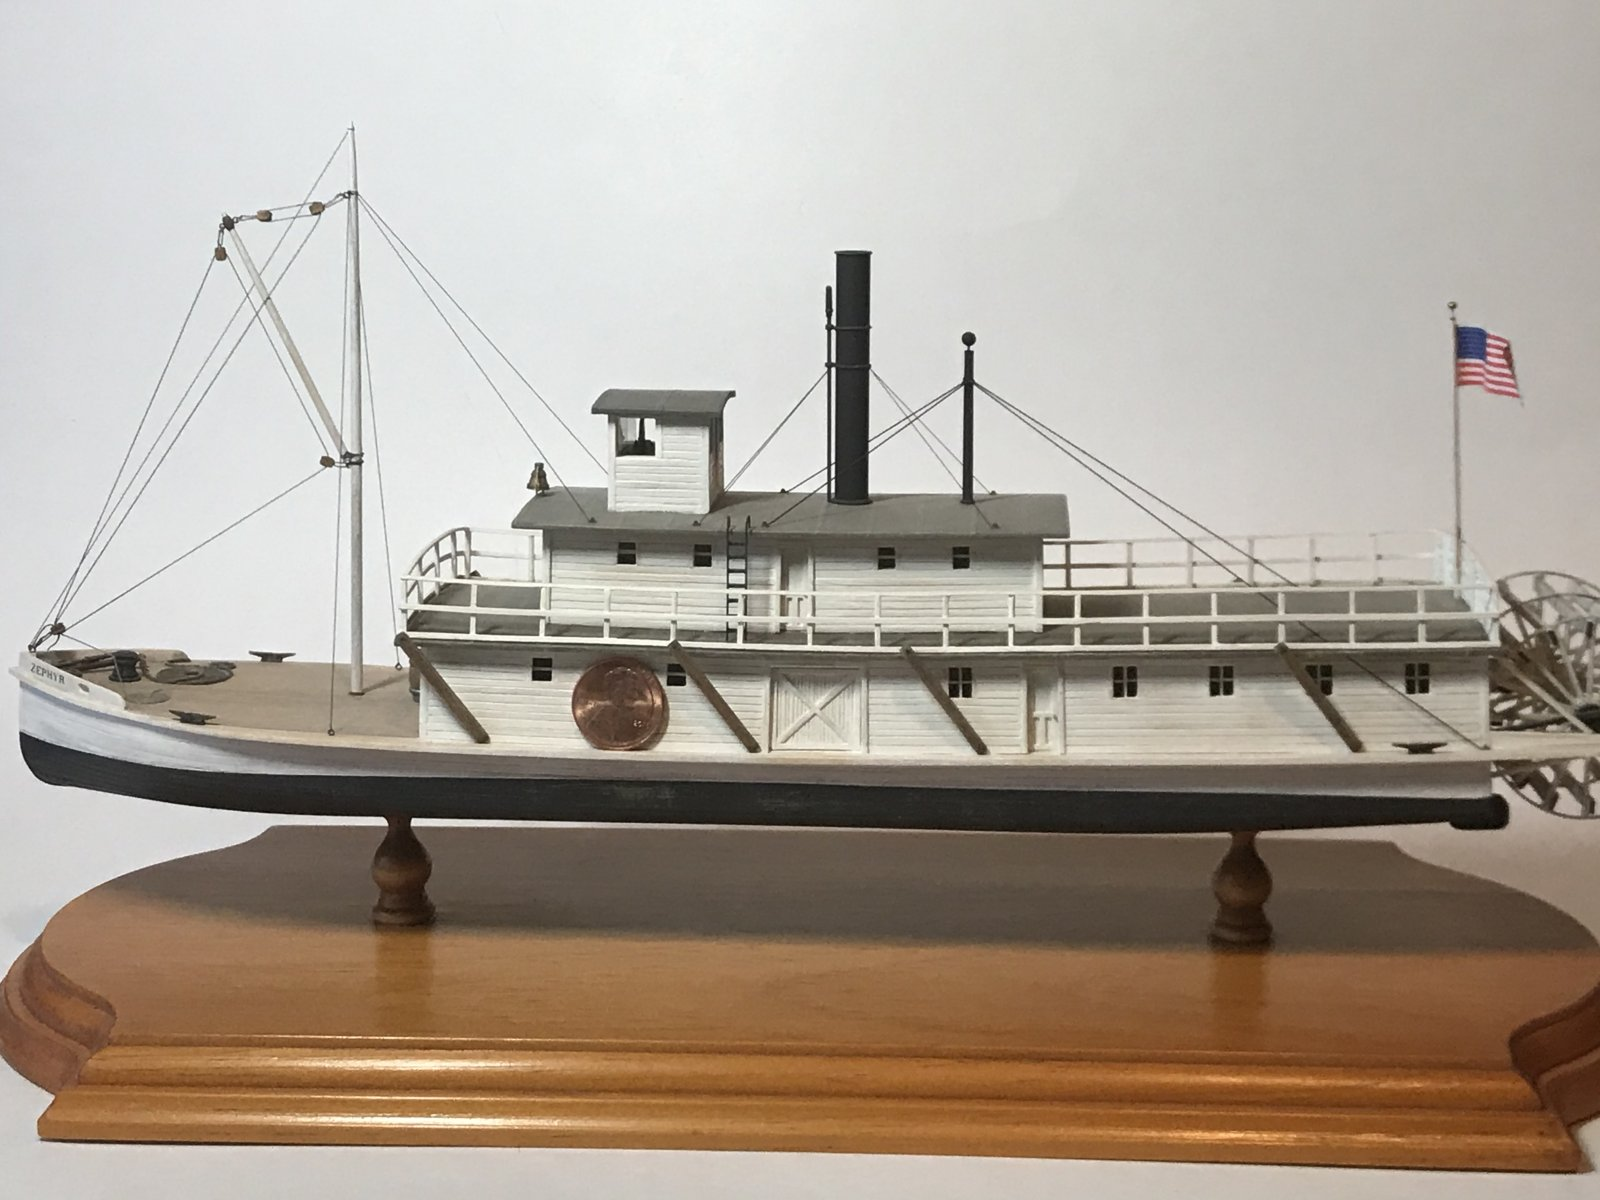 Zephyr Steam Boat - Puget Sound, Late 1800's